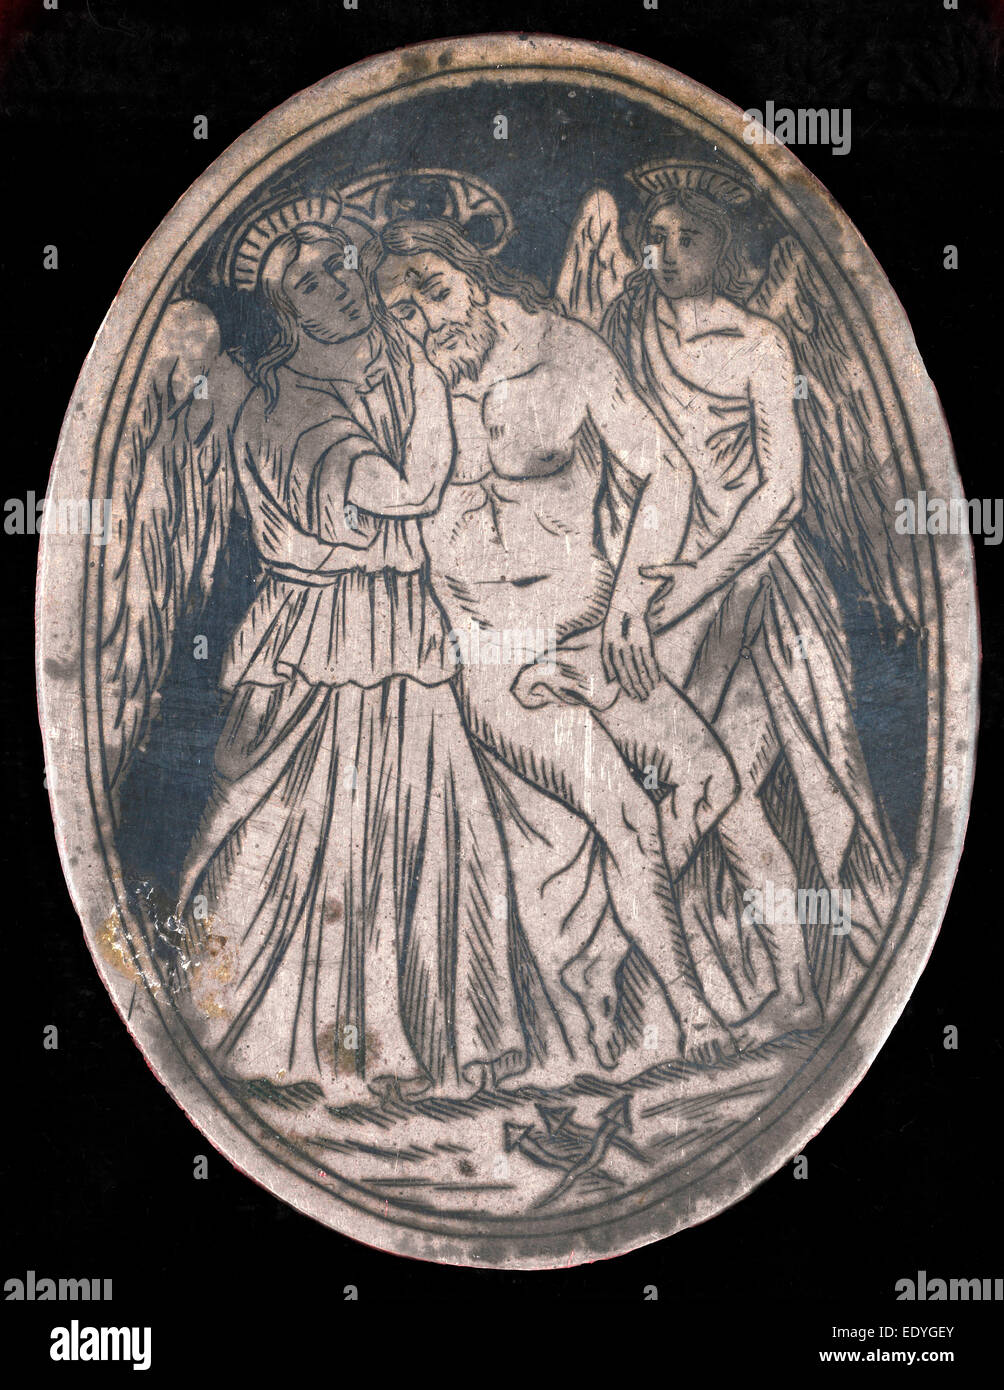 Probably Venetian 16th Century, Dead Christ Supported by Two Angels, c. 1589, niello plate - Stock Image